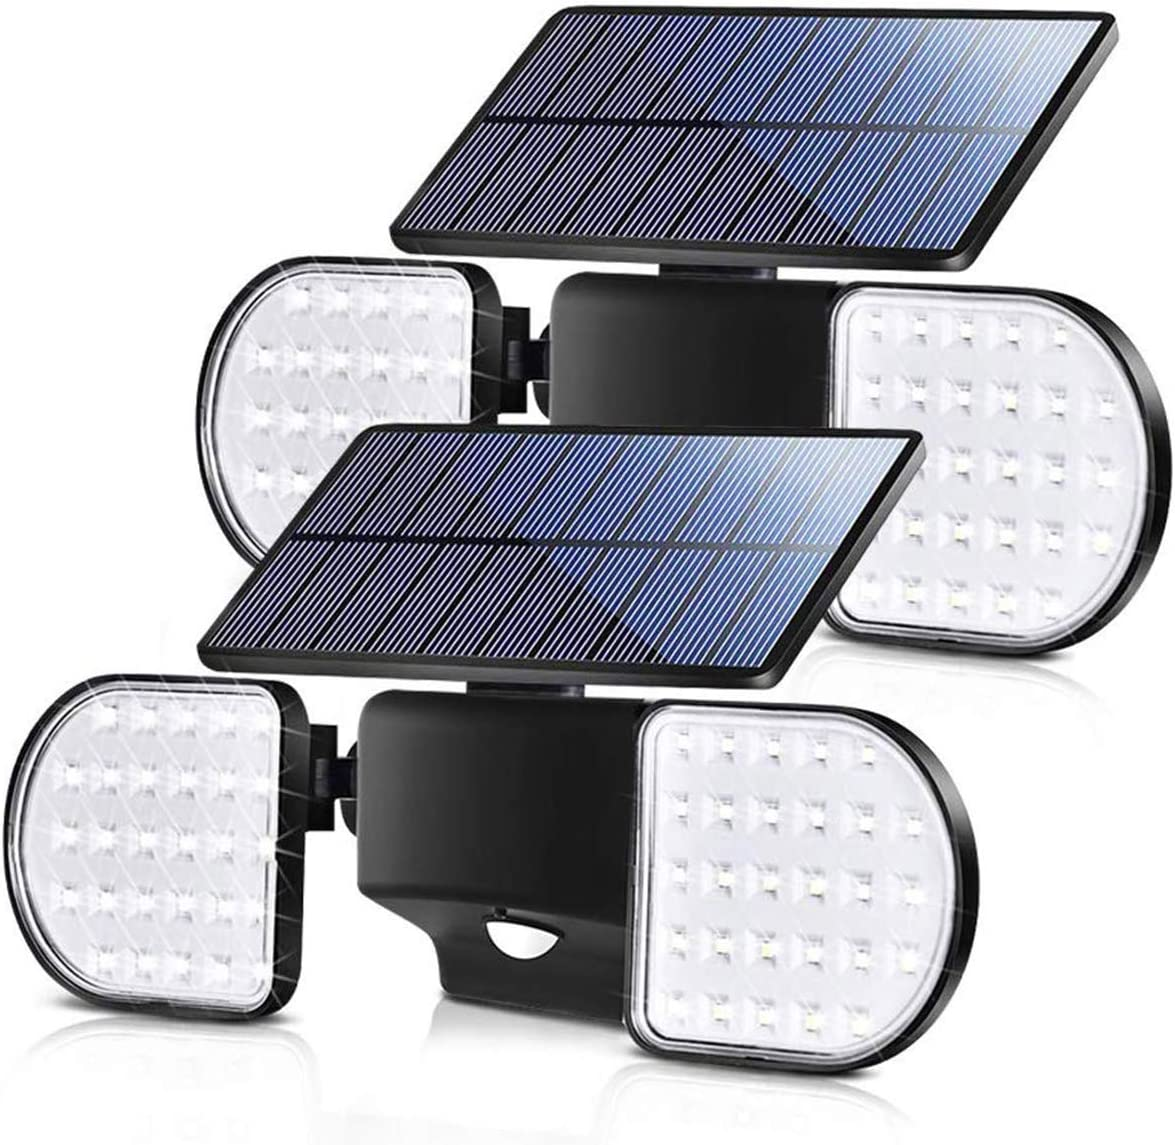 Fitybow Solar Lights Outdoor, Solar Security Lights with Motion Sensor 56 LED Solar Spotlight Lights Waterproof Solar Powered Wall Light Dual Head 360 Rotatable for Yard Garage Patio 2Pack